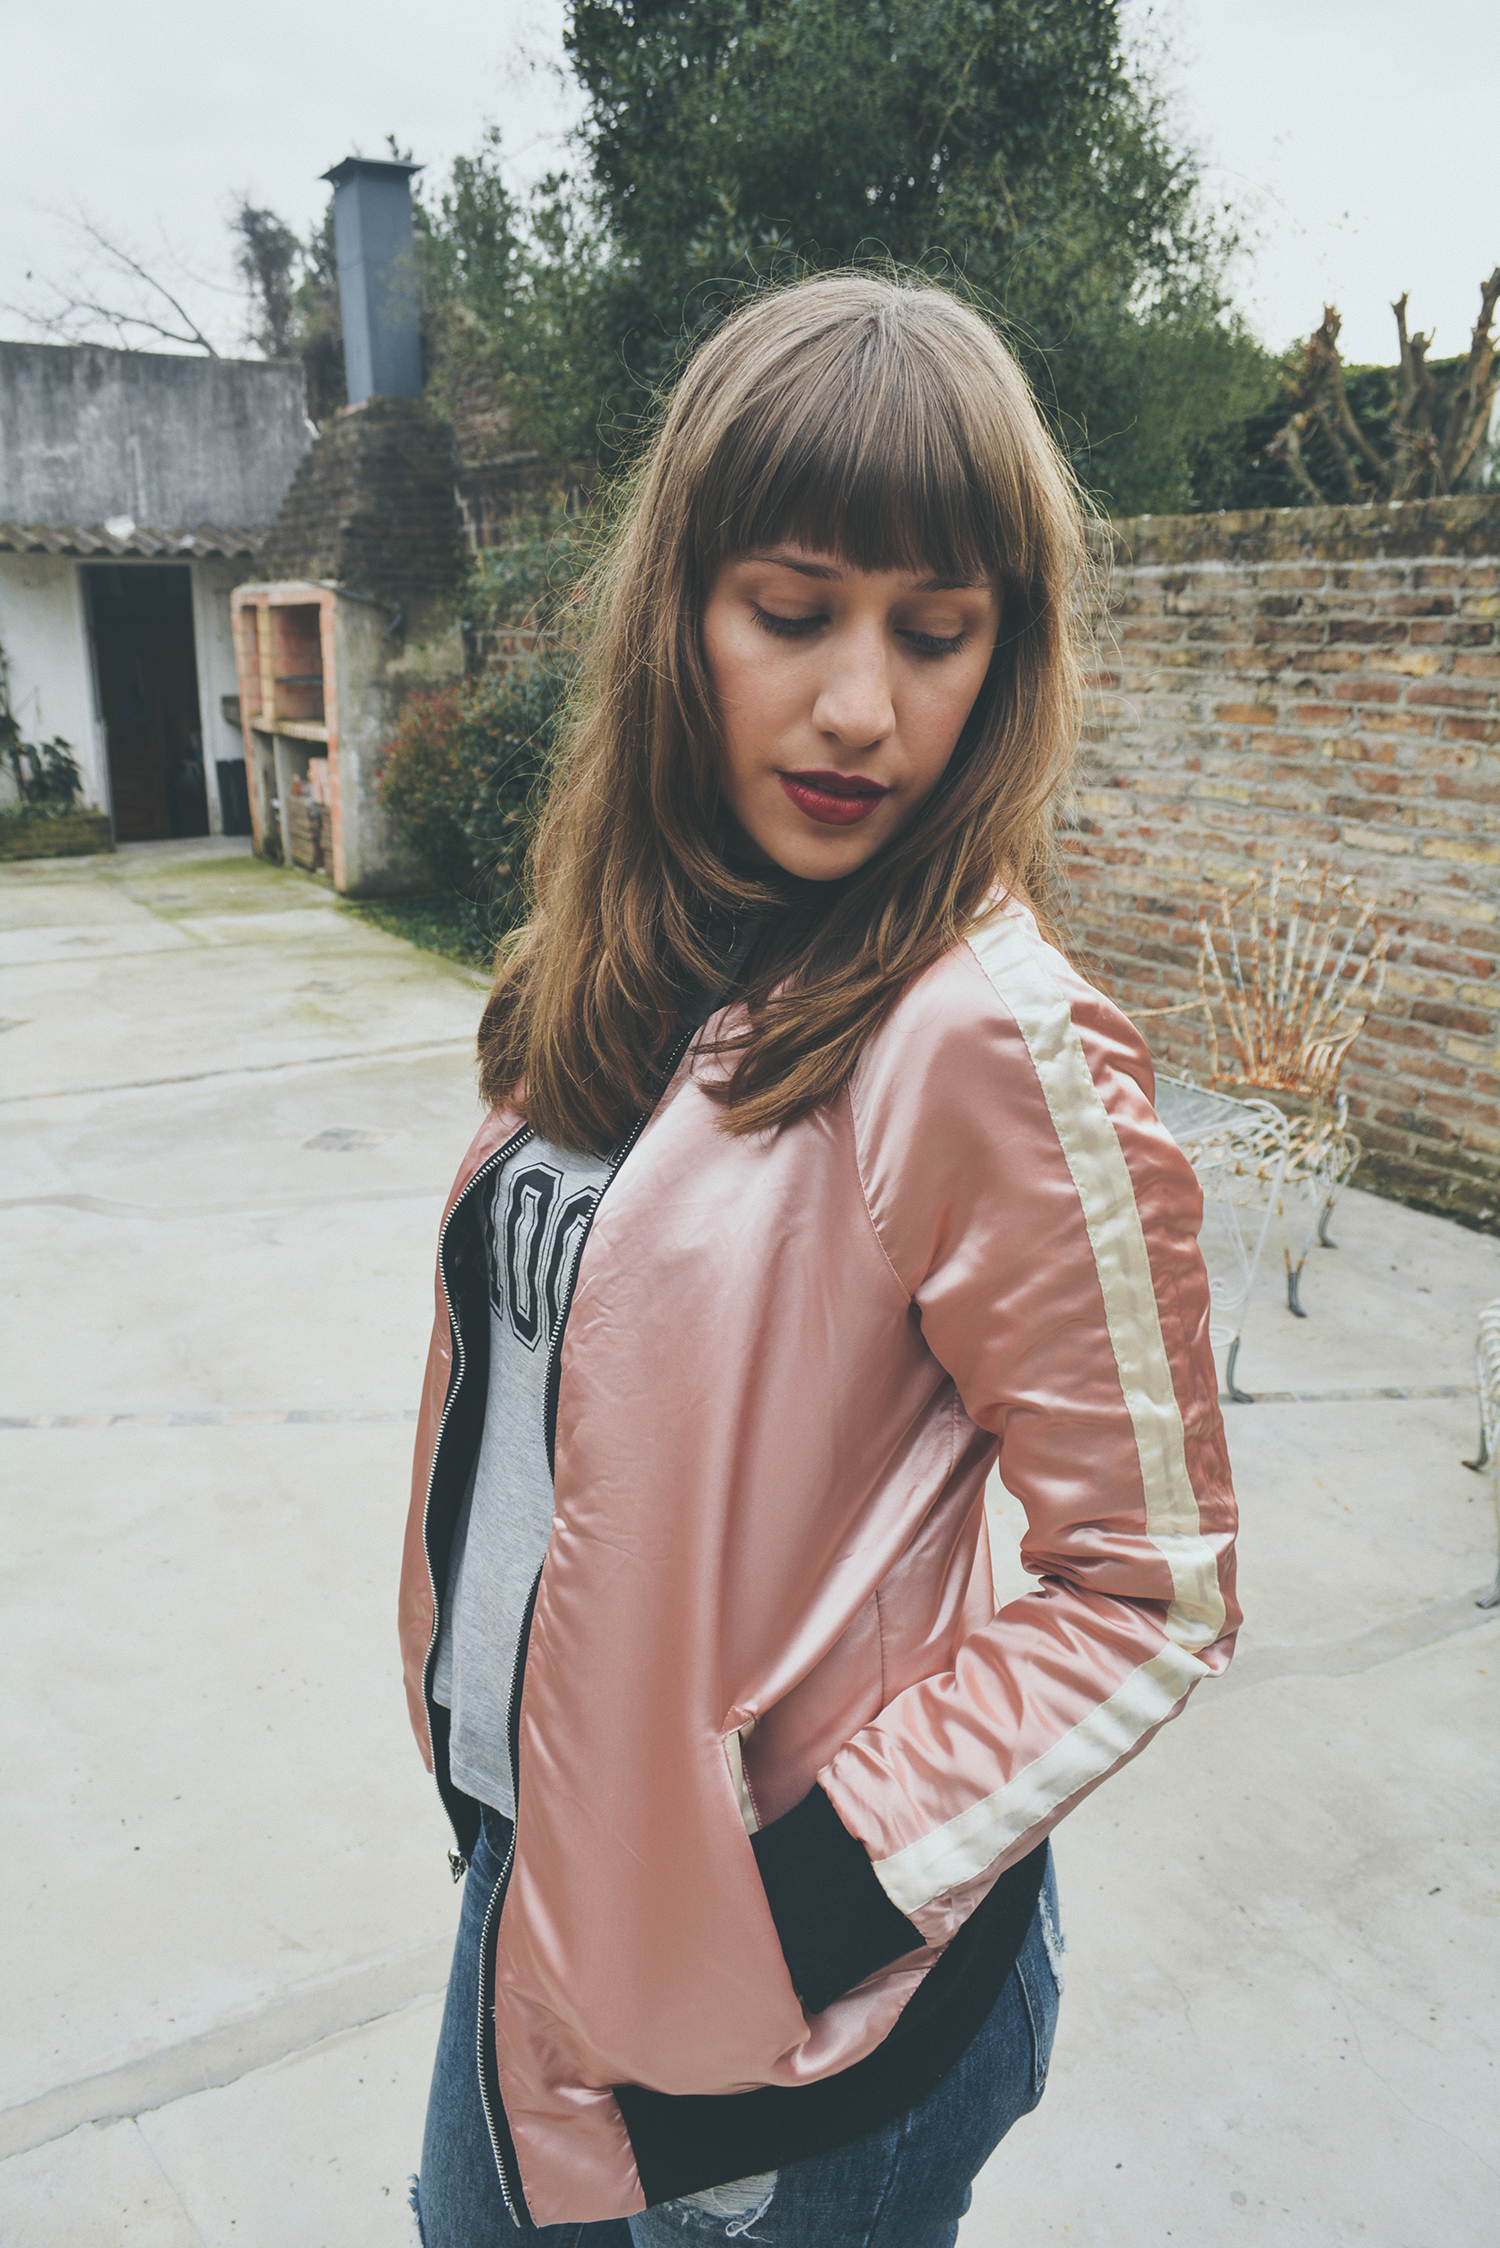 fashion, fashionista, moda, blogger argentina, fashion blogger, fashion blogger argentina, blogger, lifestyle blogger, thoughts, ootd, outfit, style, look, outfit of the day, lookbook, what i wore